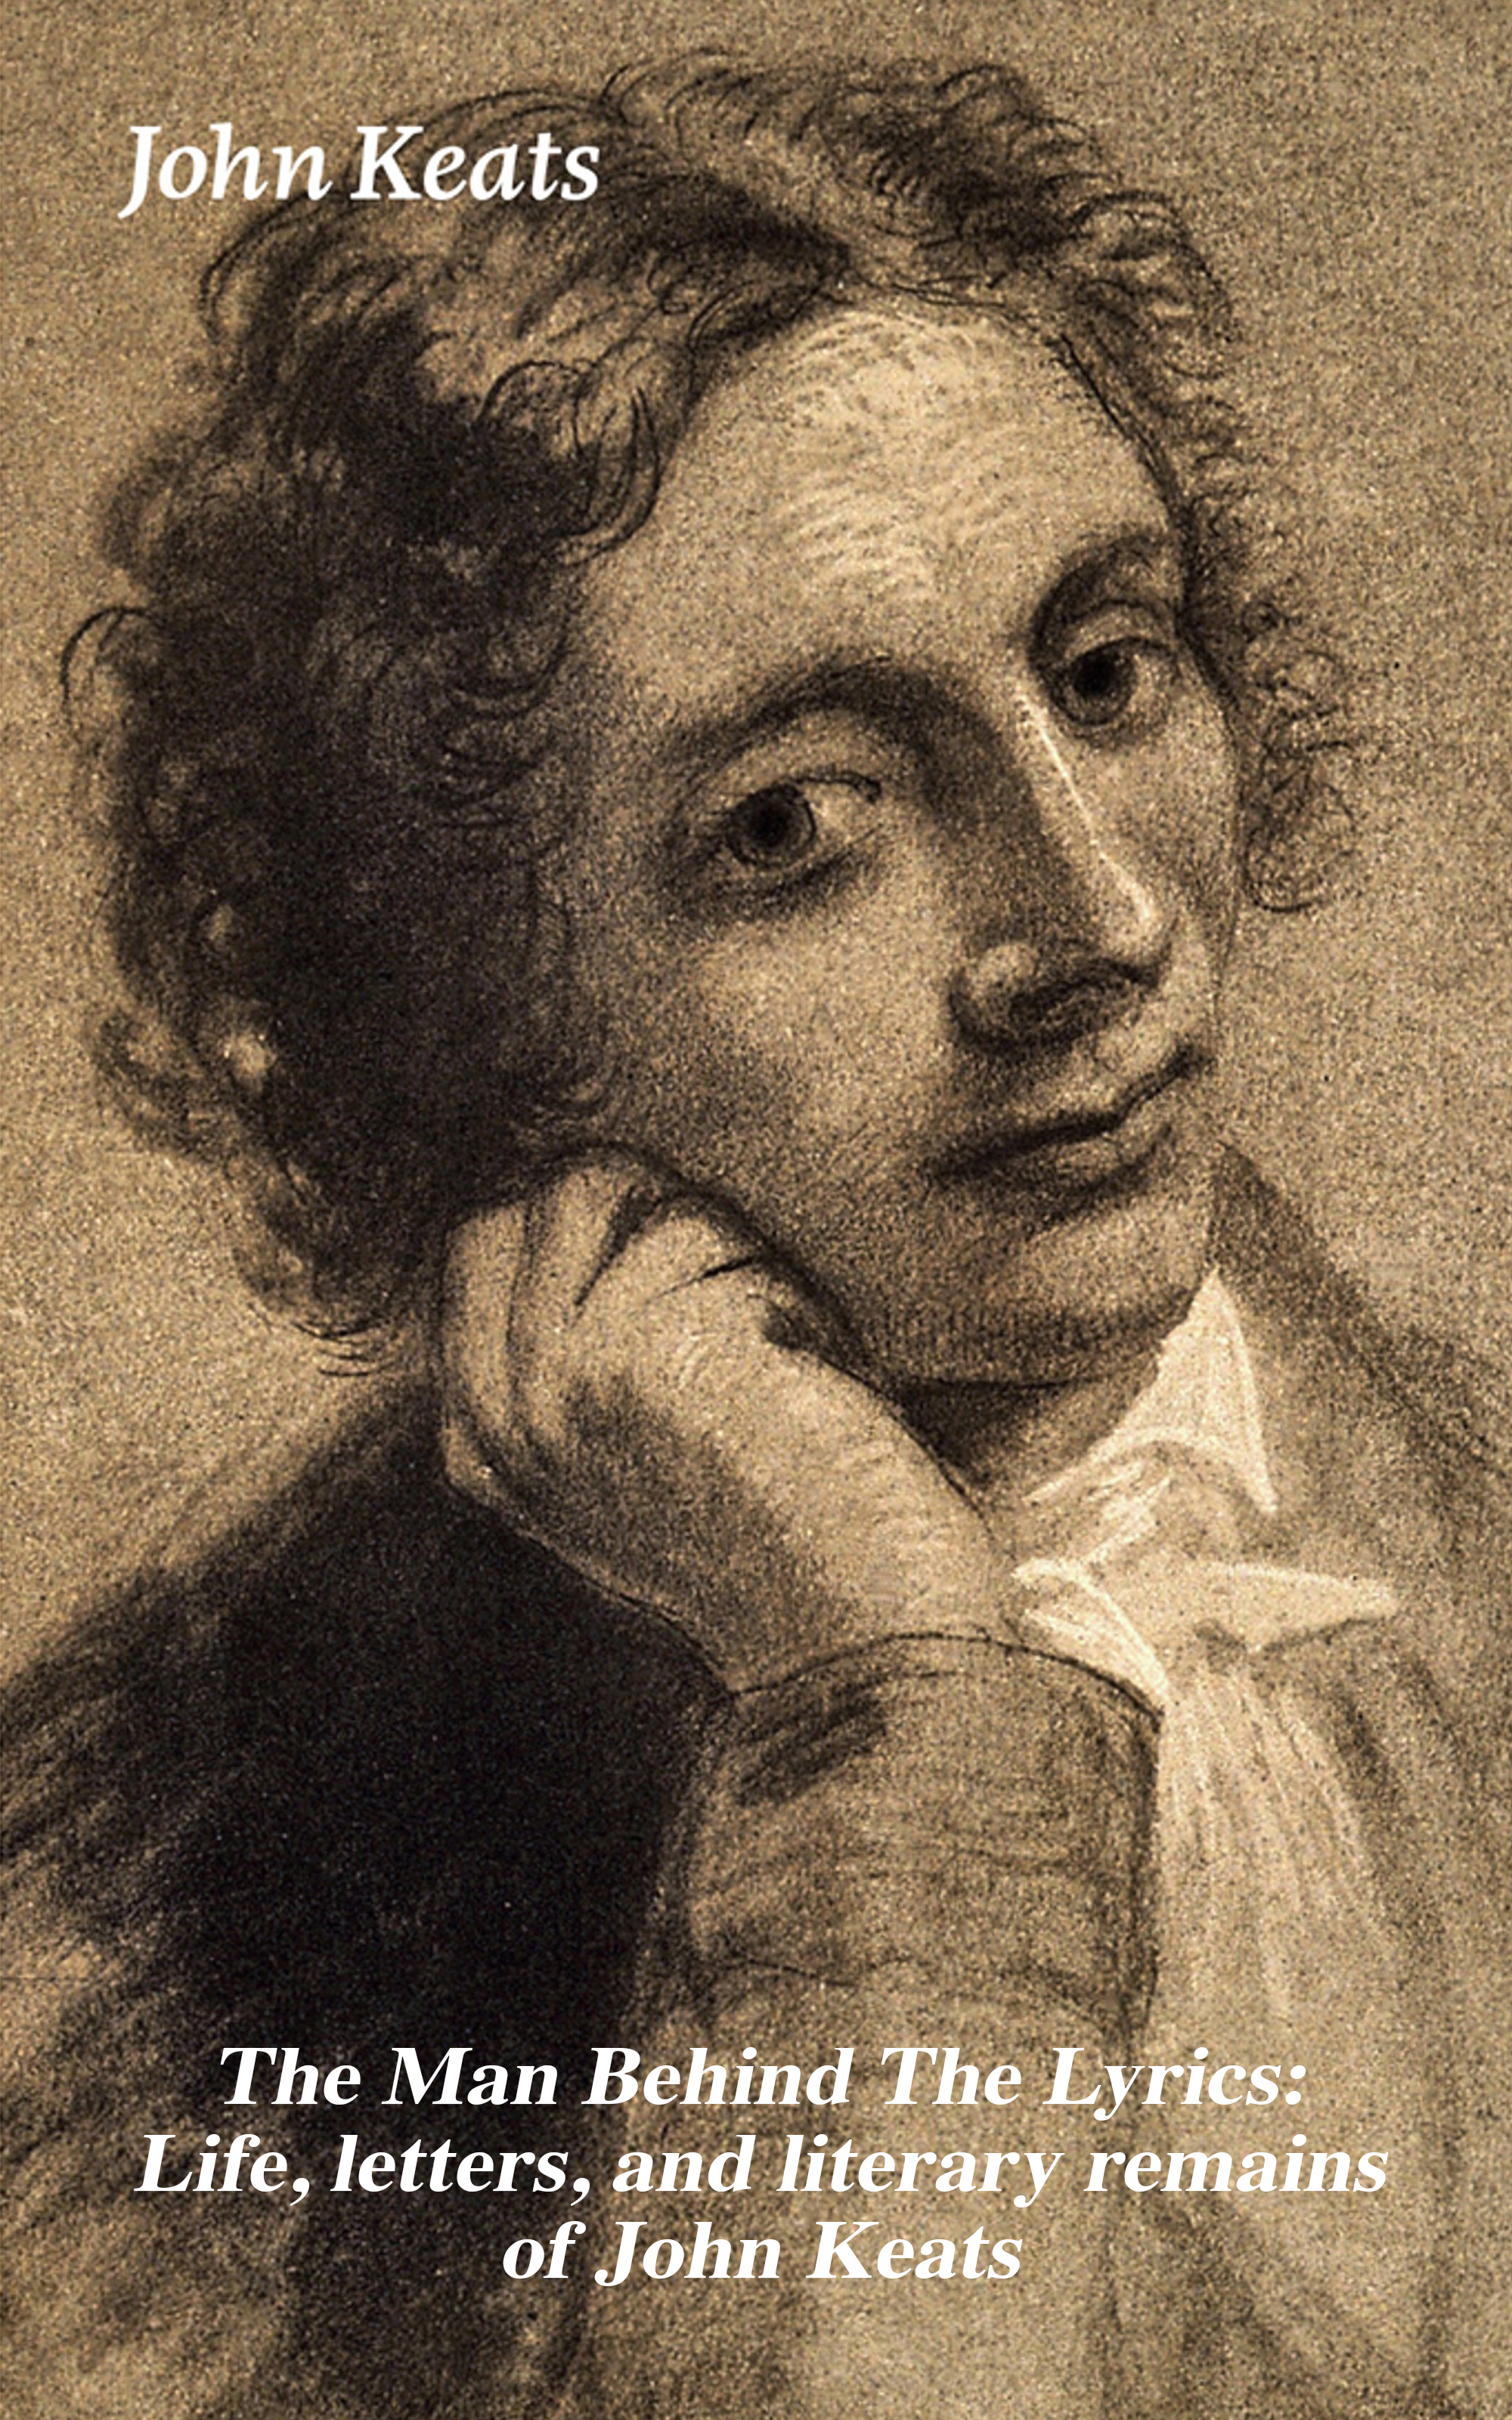 John Keats The Man Behind The Lyrics: Life, letters, and literary remains of John Keats все цены